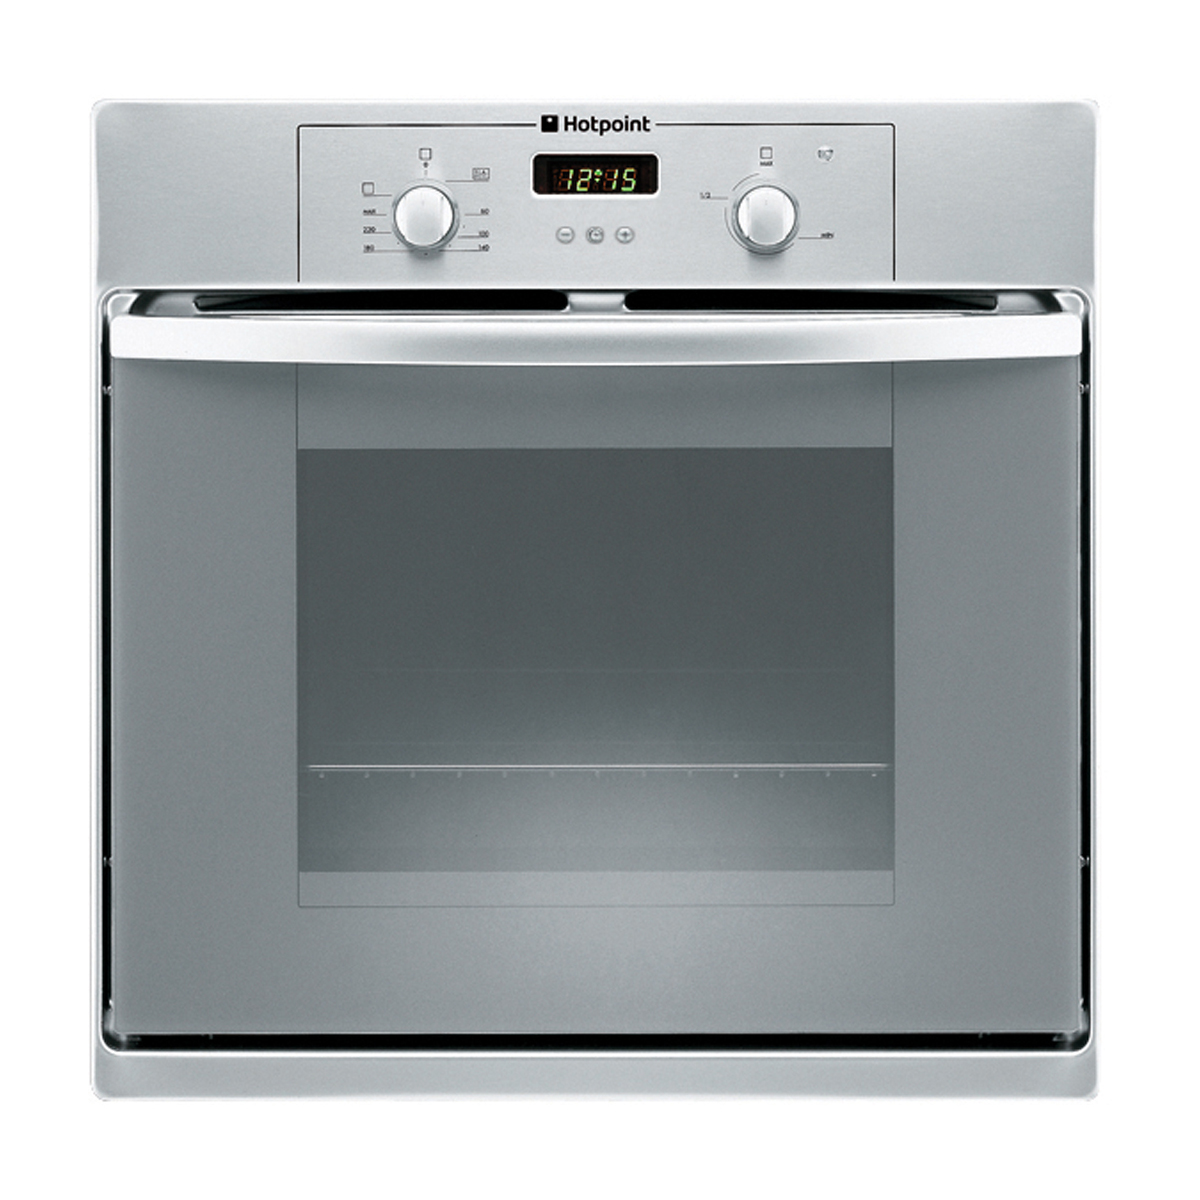 hotpoint double oven manual open source user manual u2022 rh dramatic varieties com hotpoint stove manual self cleaning hotpoint stove manual rb720dhww